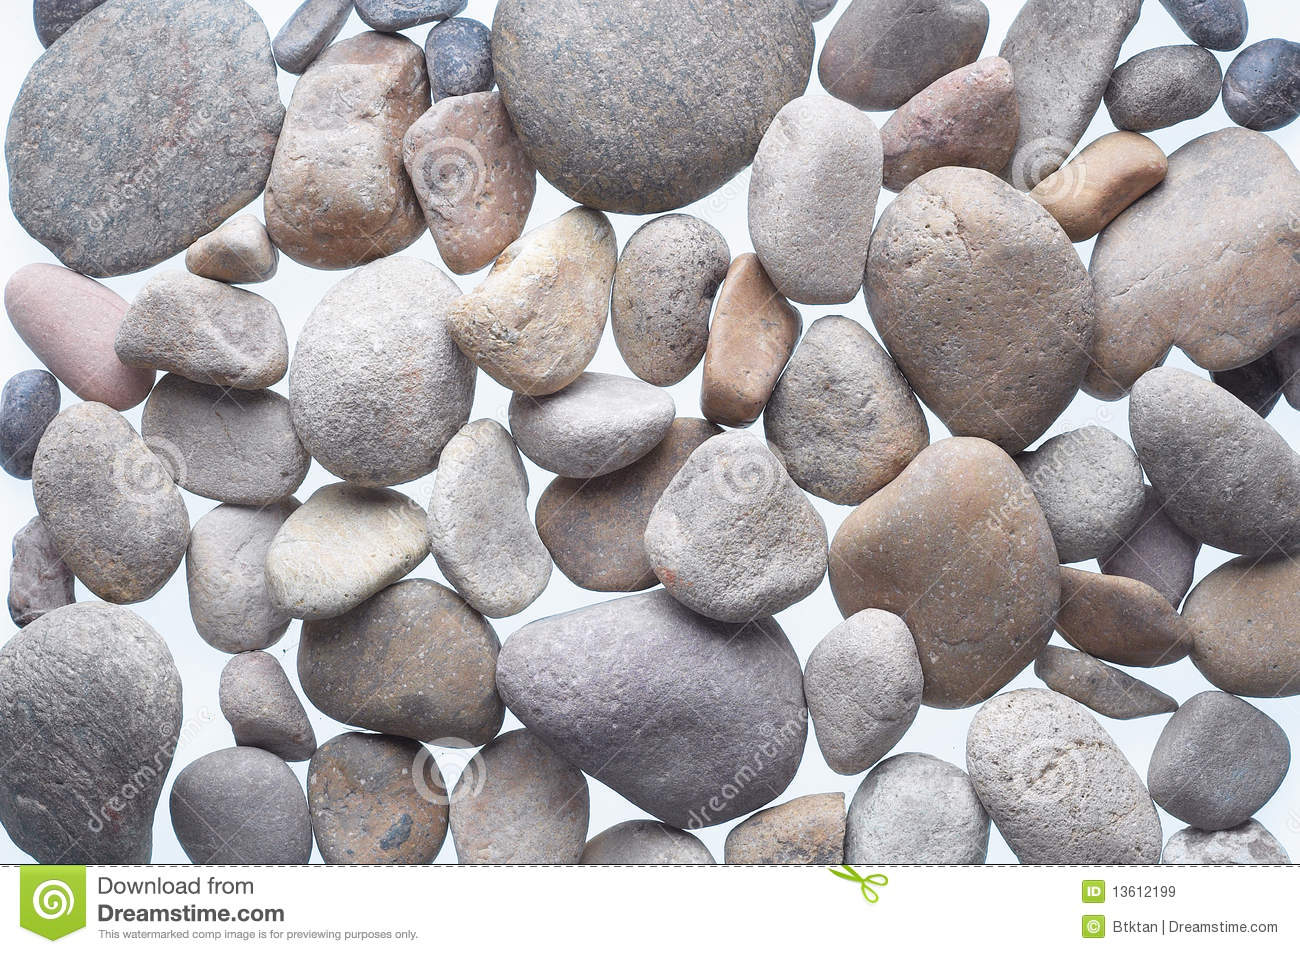 Download Stones stock image. Image of meditation, ancient, environment - 13612199